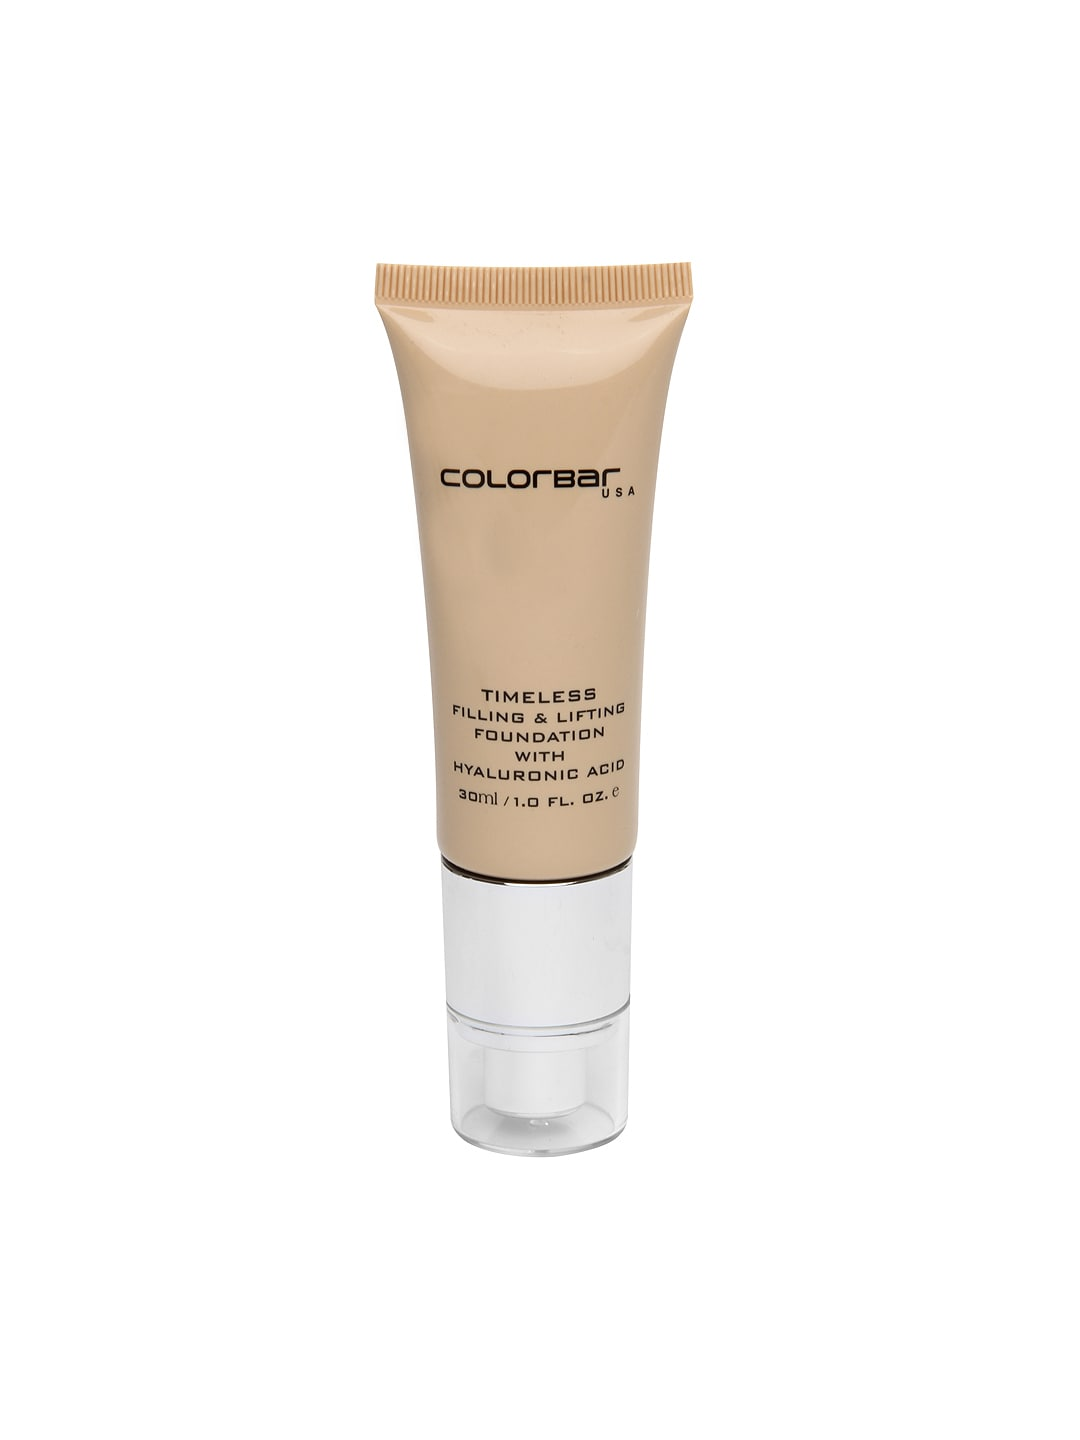 Colorbar Sweet Shell Timless Filling & Lifting Foundation 03 image